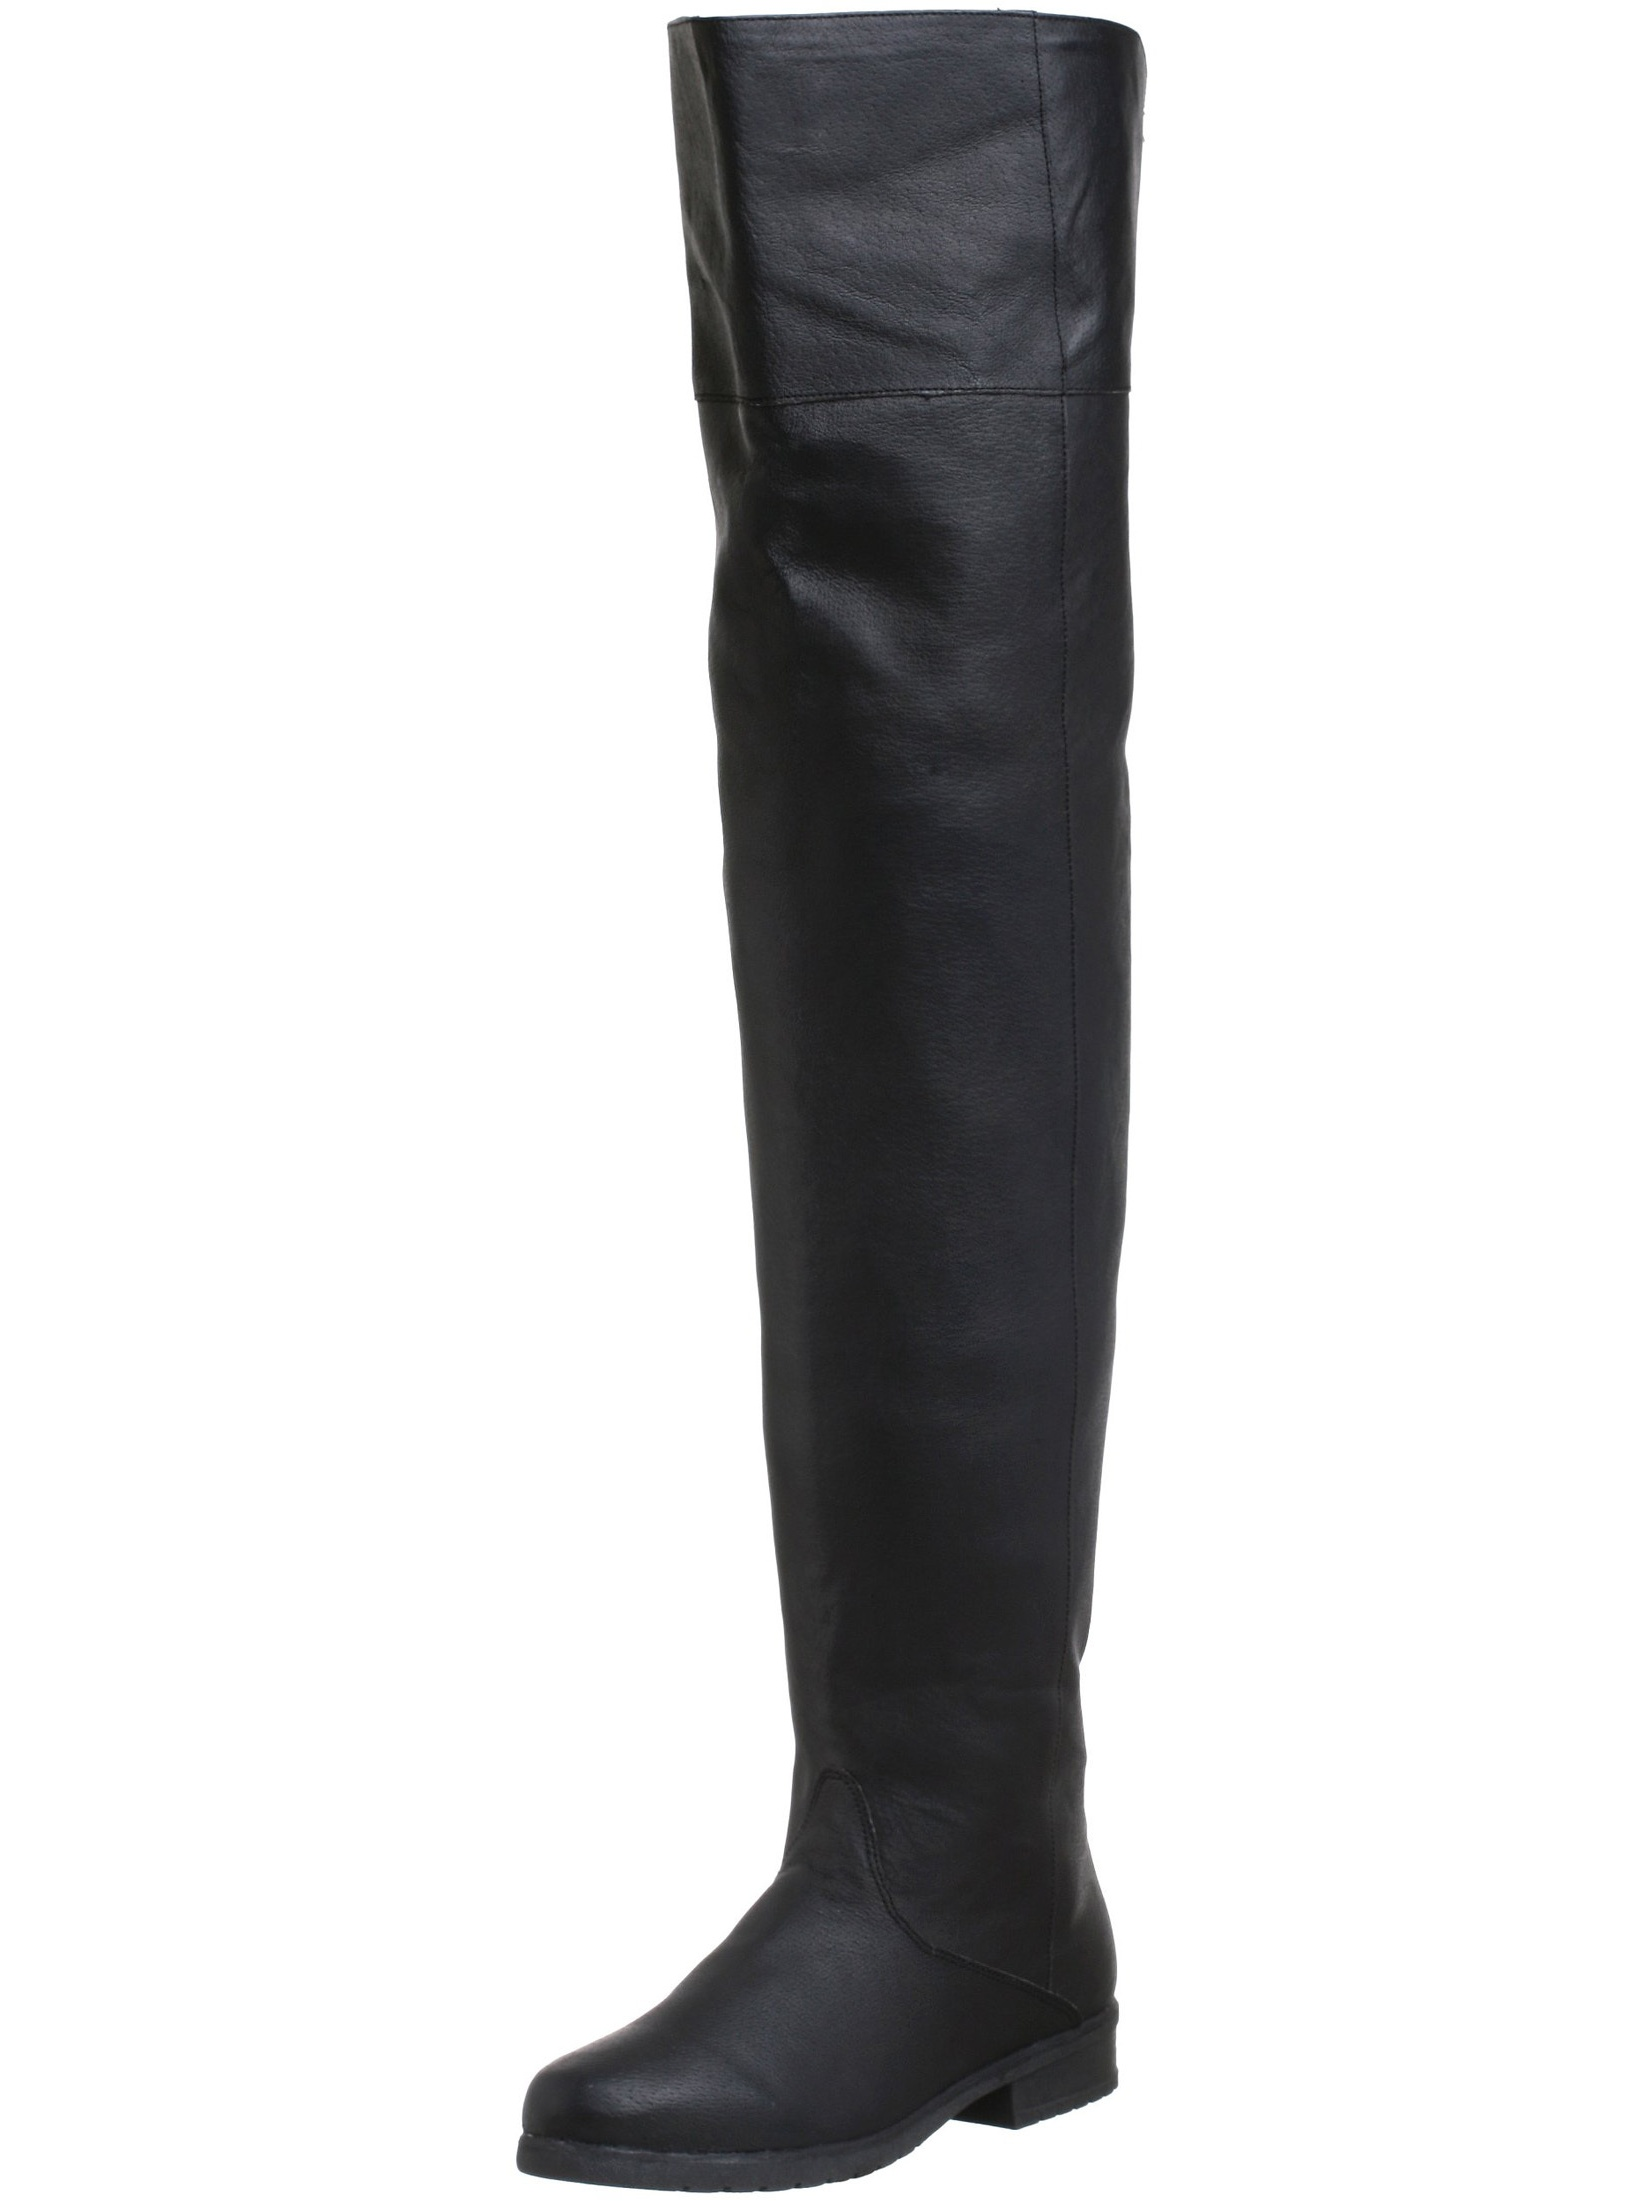 Mens Thigh High Boots Black Leather Pirate Costumes Renaissance Shoe MEN SIZING